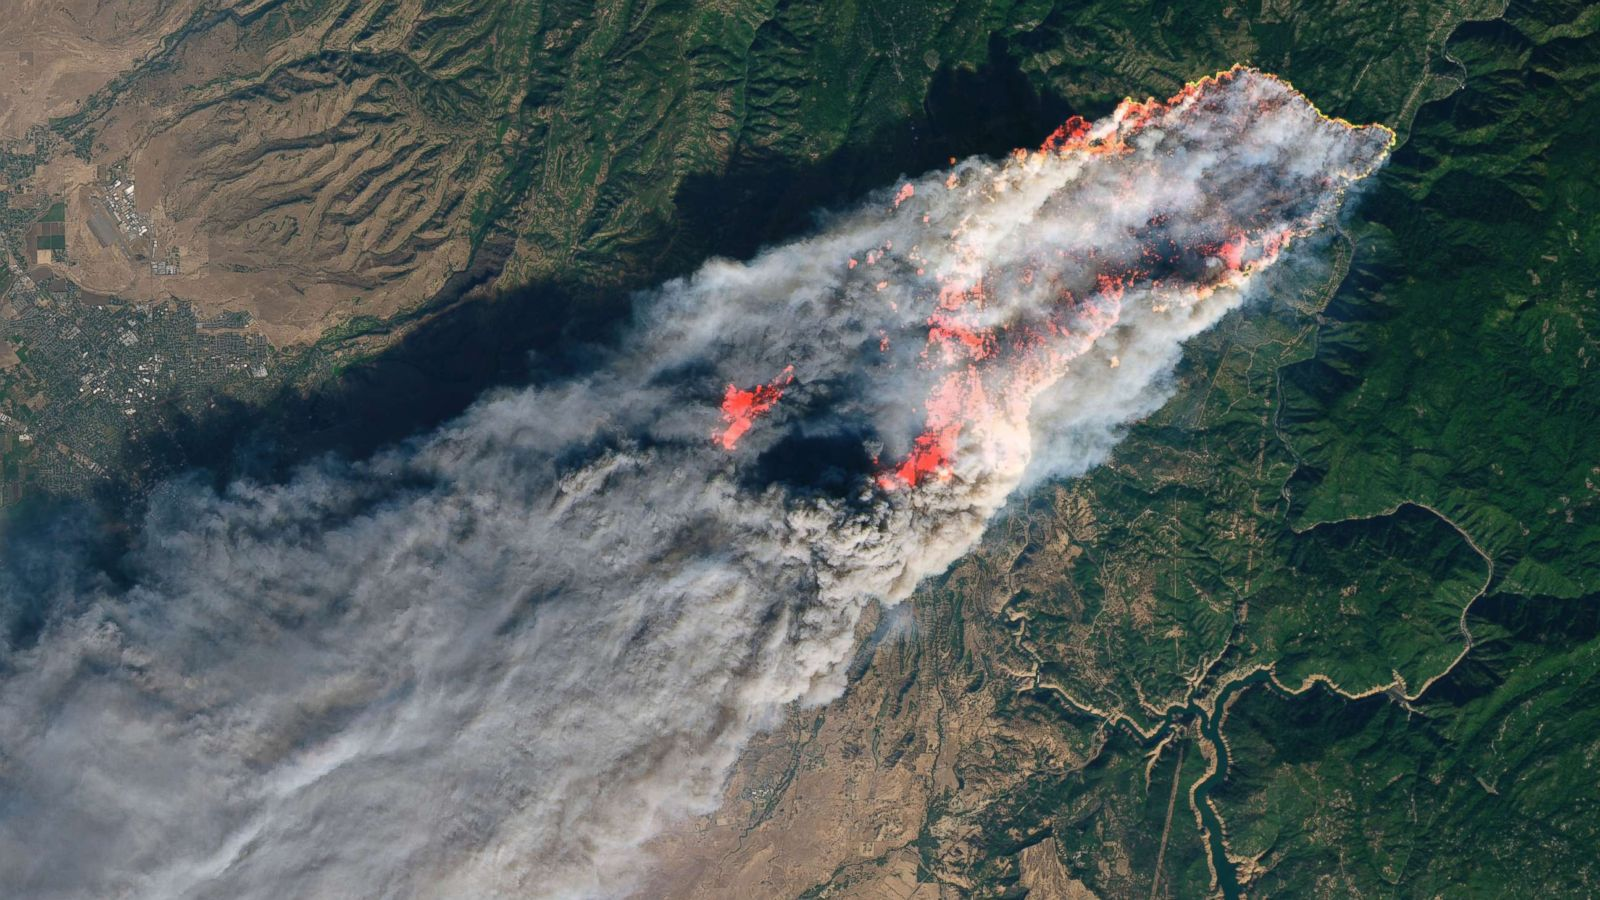 abcnews.go.com - Stephanie Ebbs - Five things to know about California and other wildfires